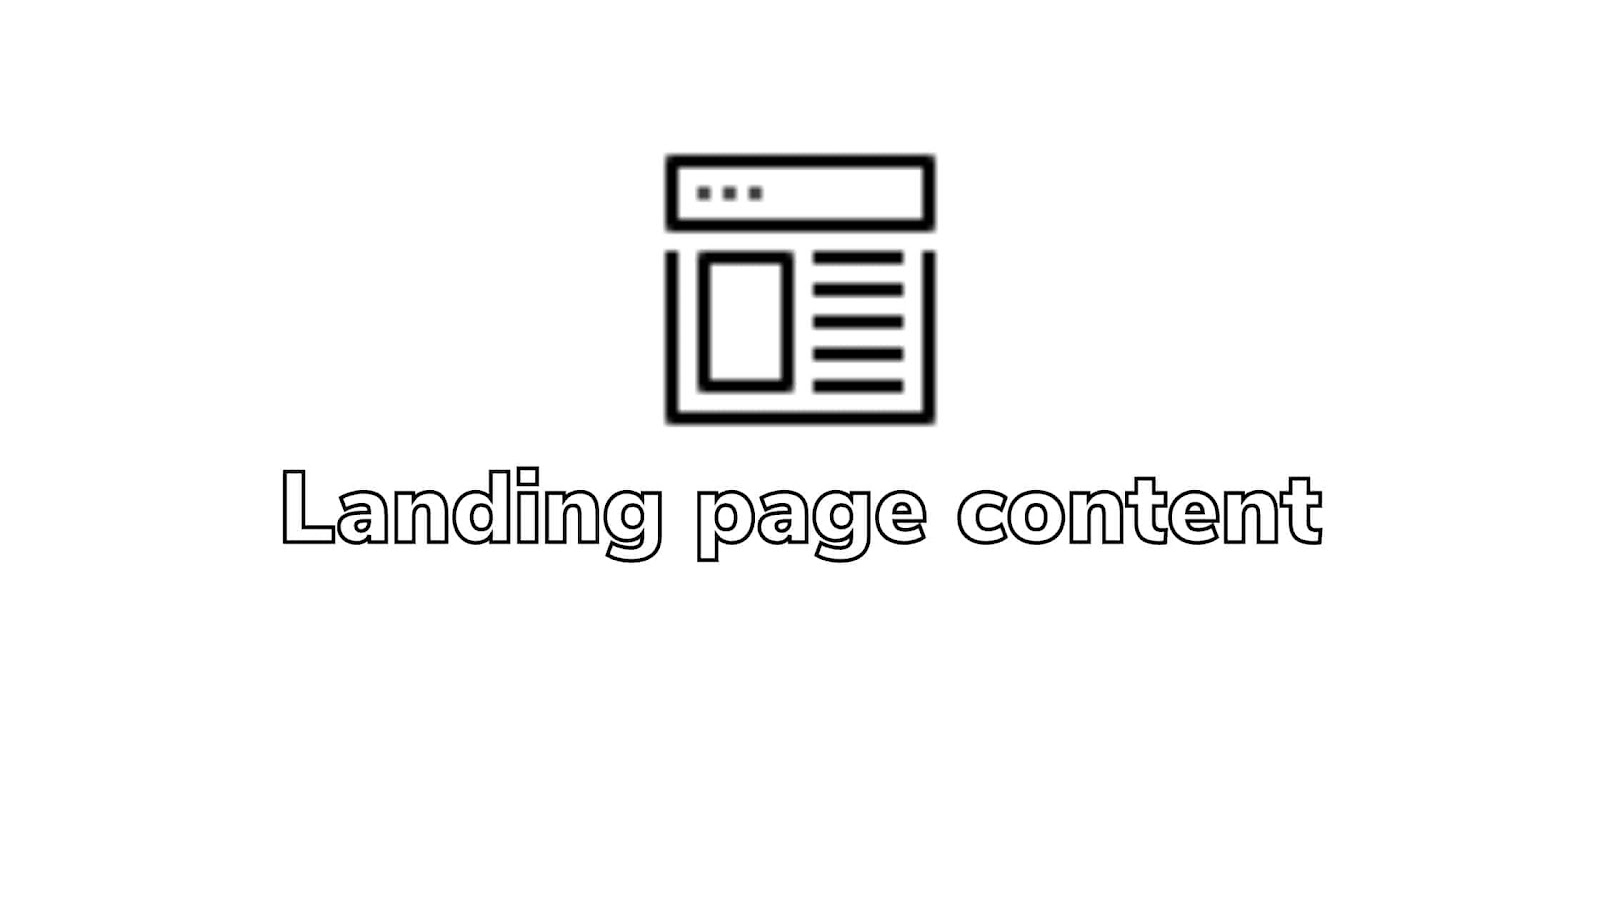 Landing page content: